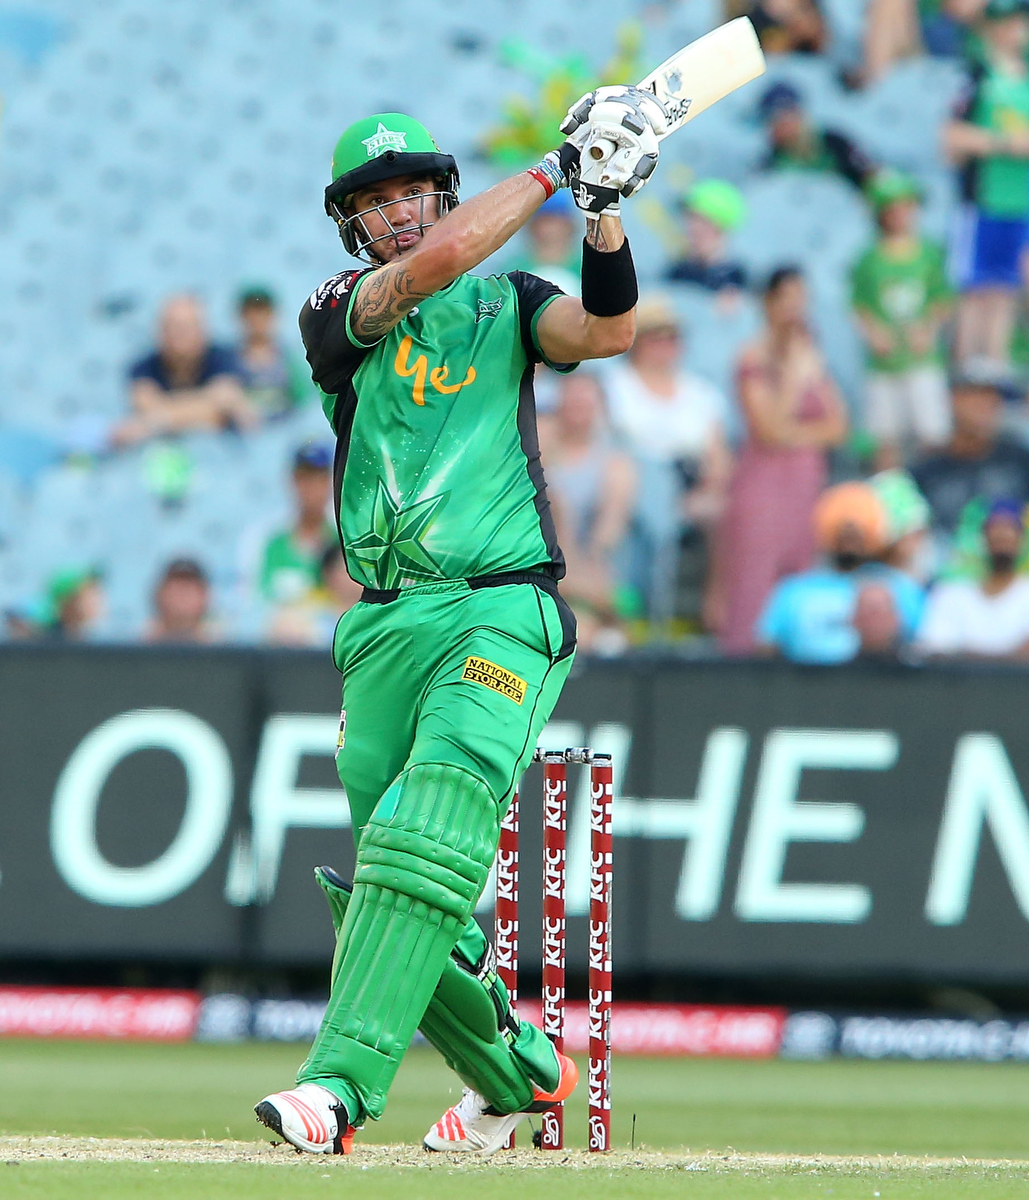 Kevin Pietersen during his last innings with the Stars. Pic: Pat Scala/Getty Images